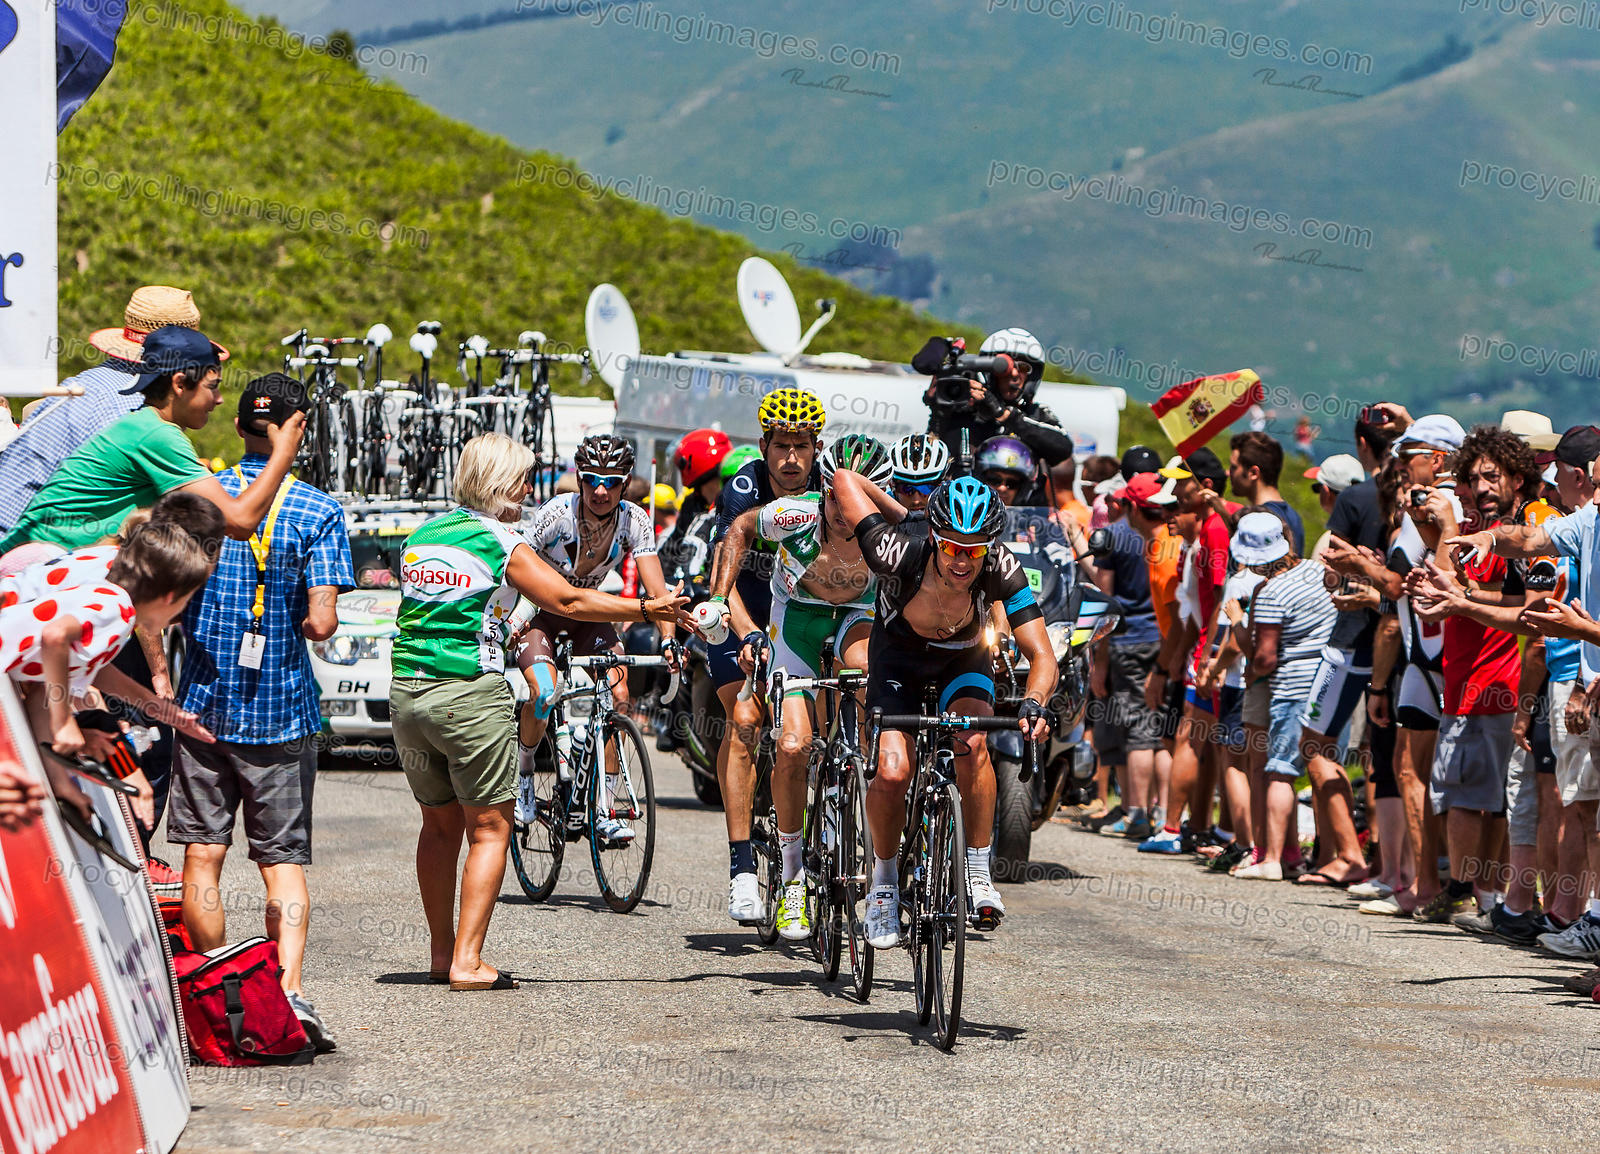 Realimentation Point - Tour de France 2013